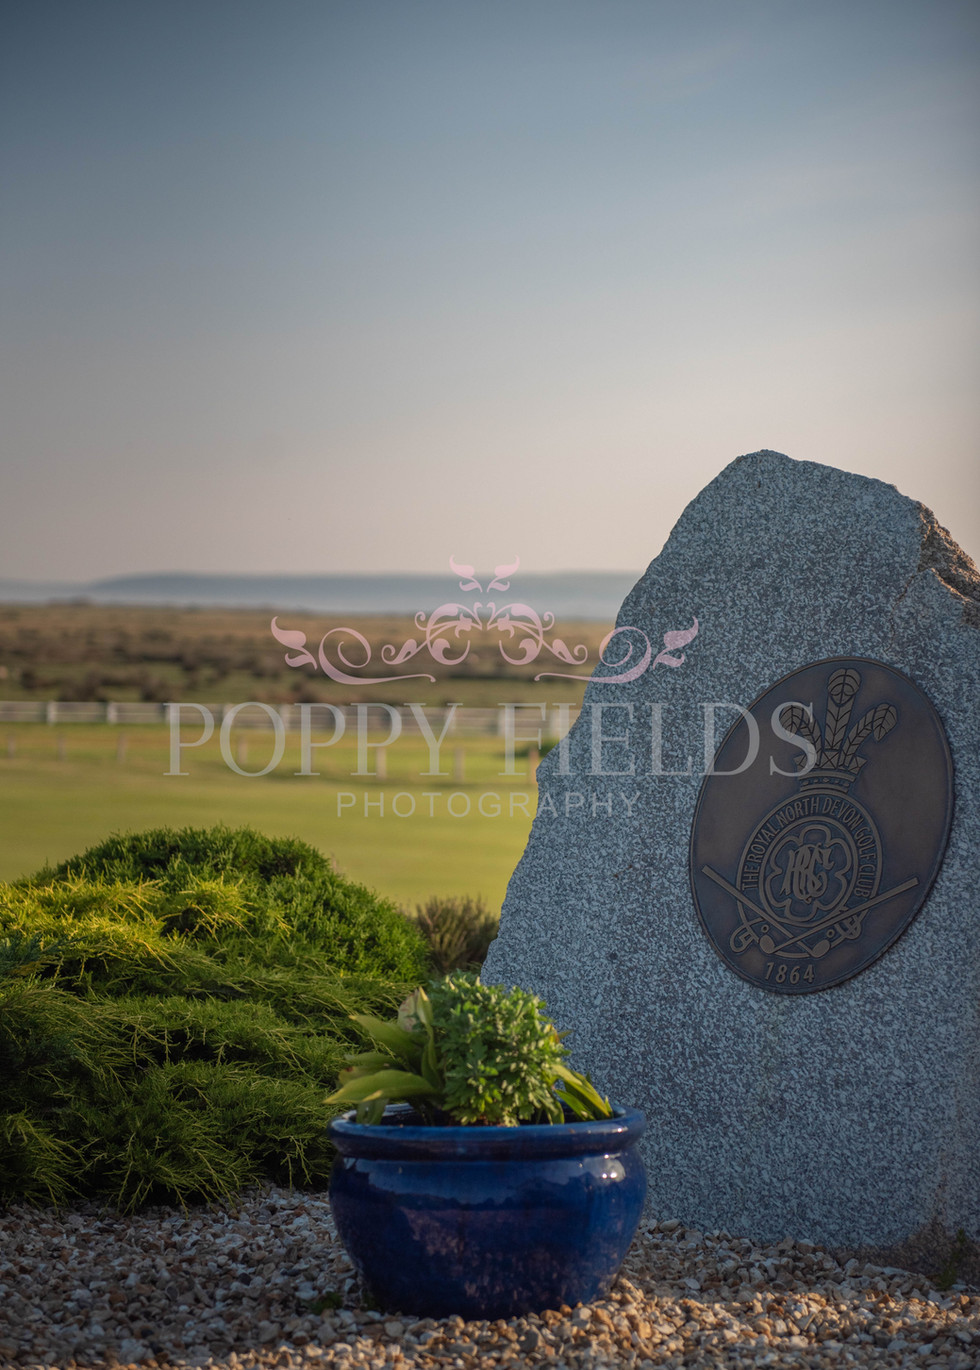 Commercial Photography by Poppy Fields Photography